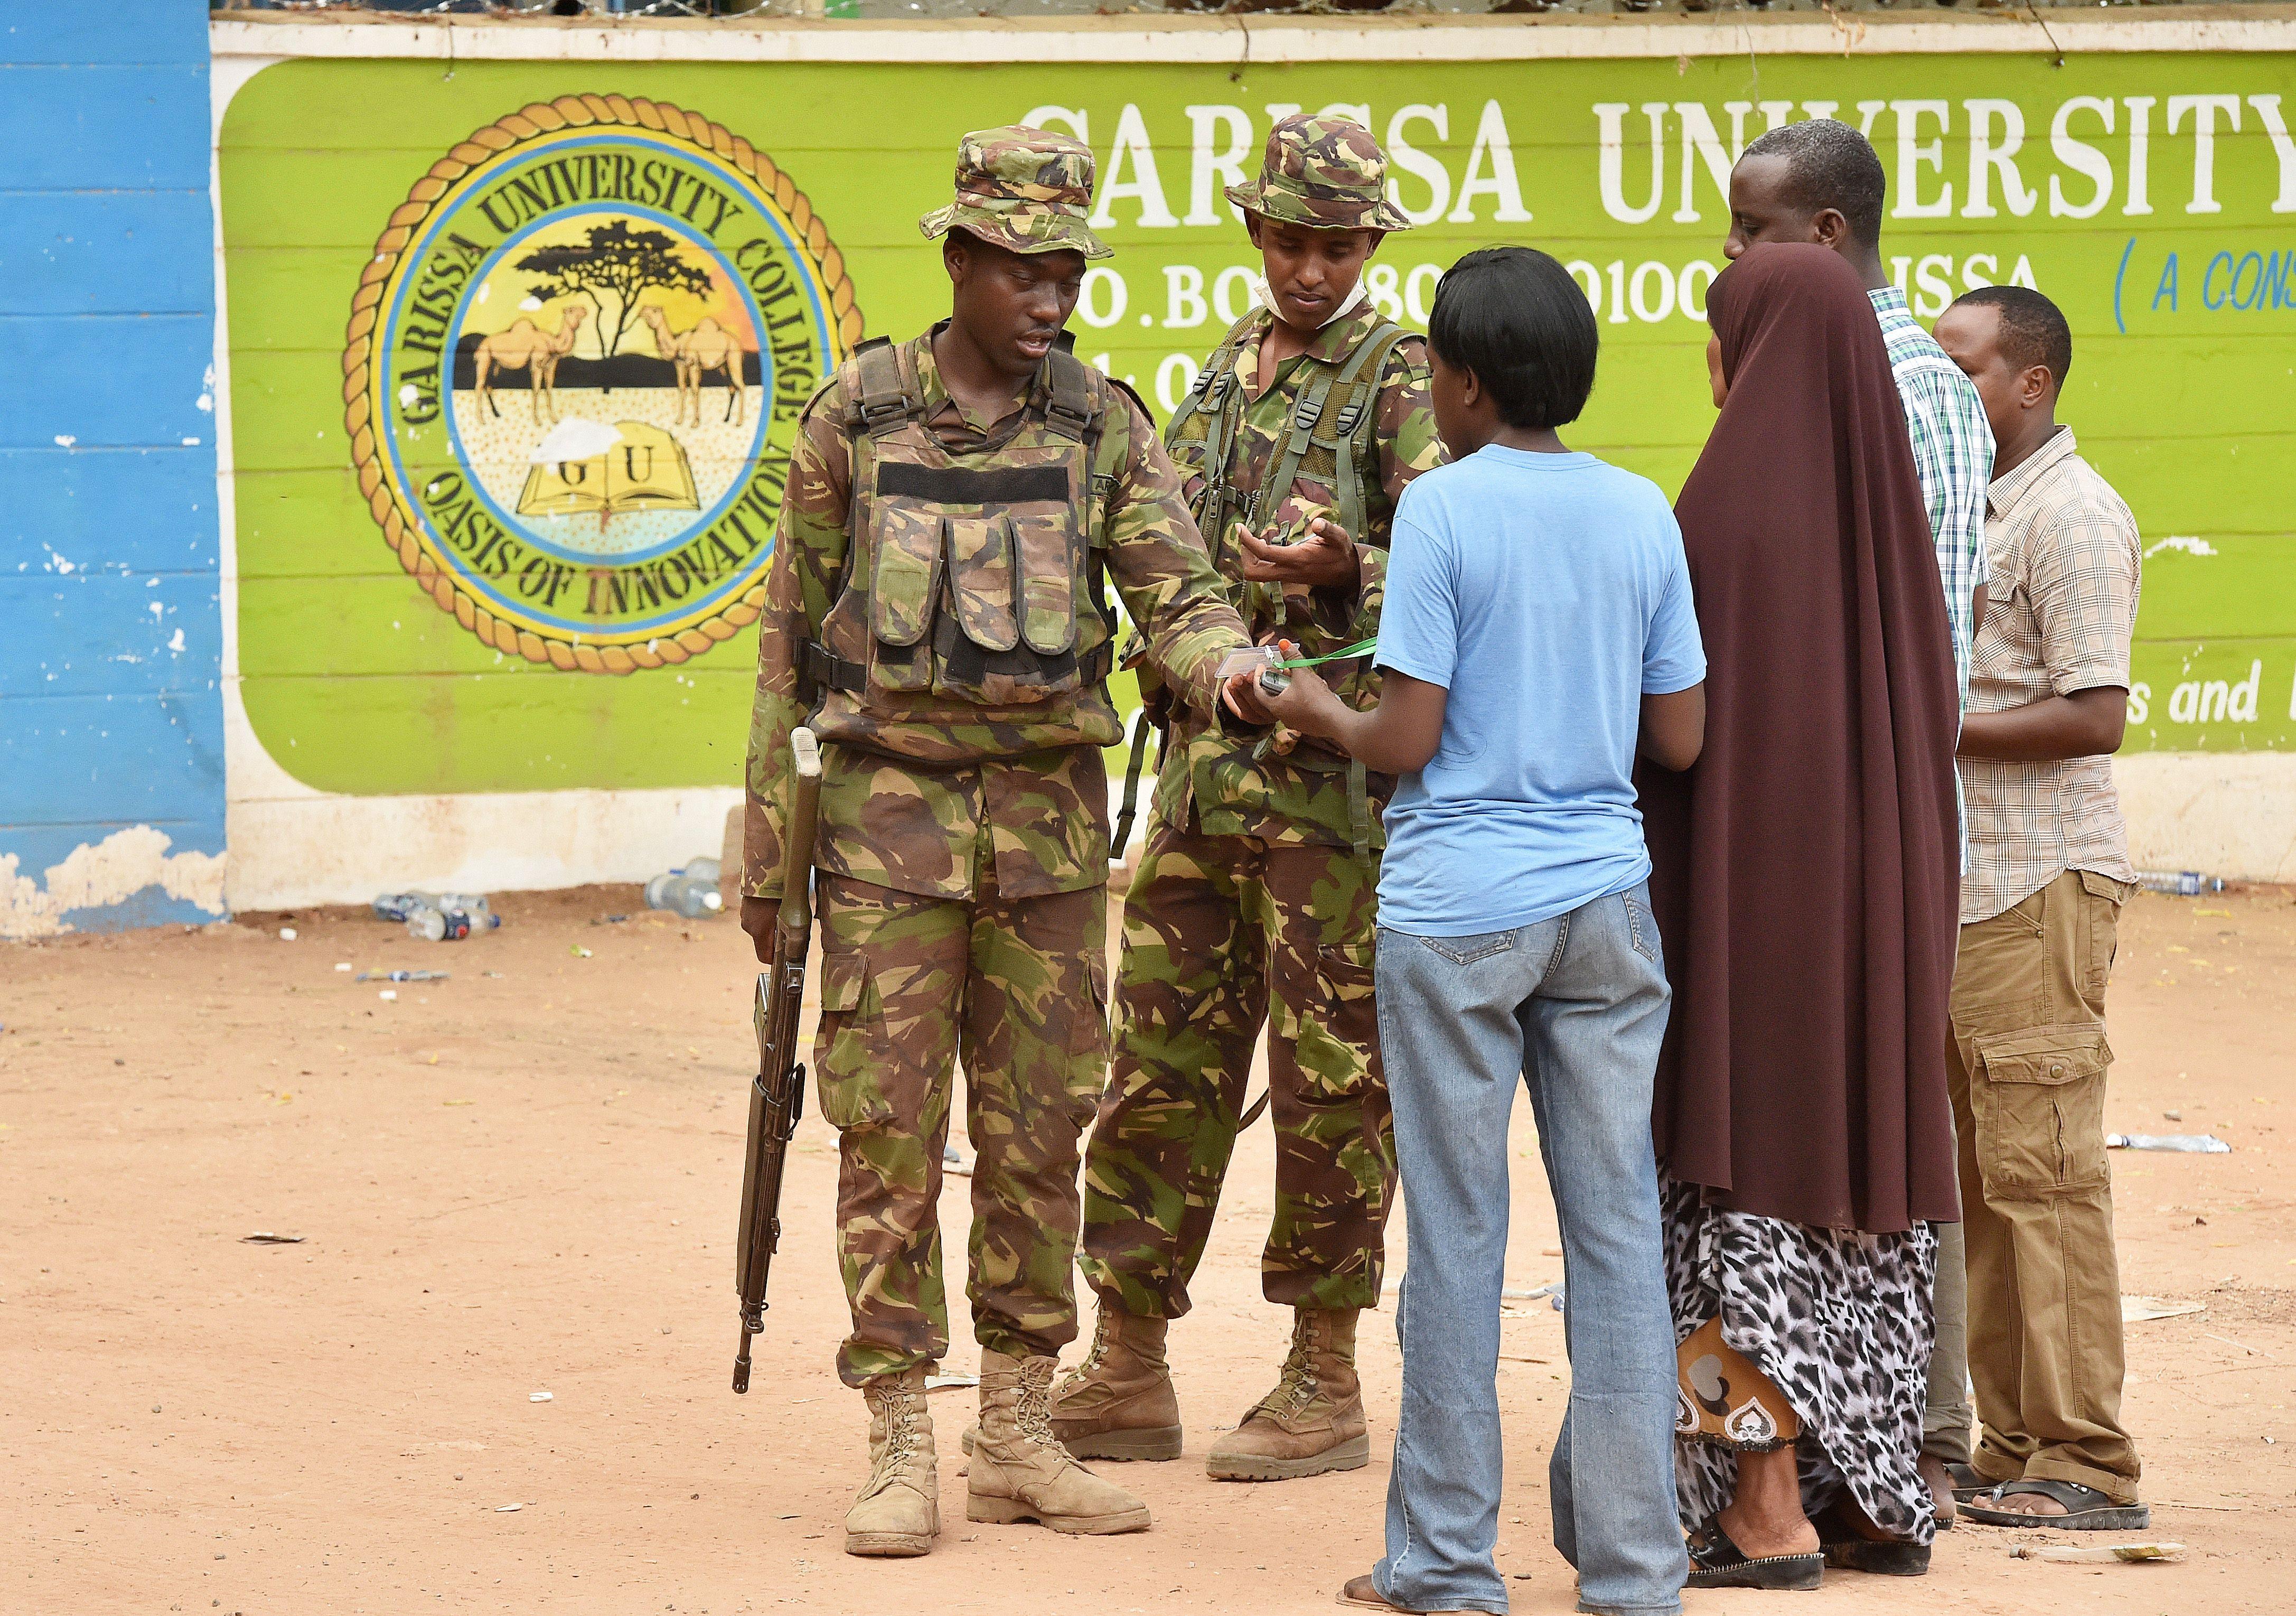 Kenya Defense forces soldiers search and question people at the front entrance of Moi University in Garissa on April 3, 2015.  (Getty)